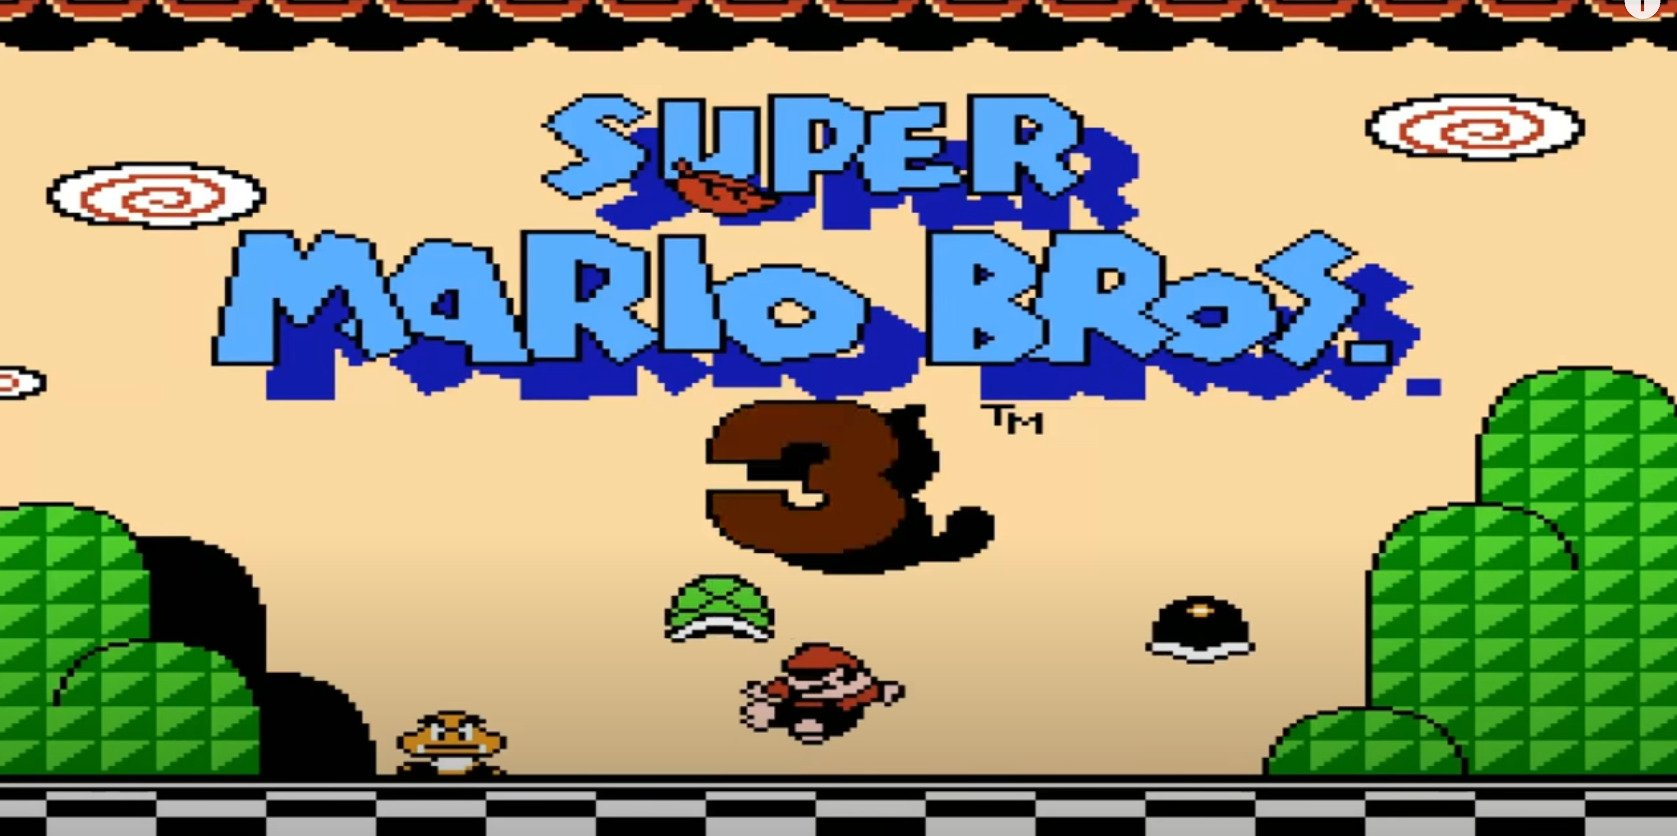 A Sealed Copy Of Super Mario Bros. 3 Broke Auction World Records For The Highest Sale Price Ever For A Video Game